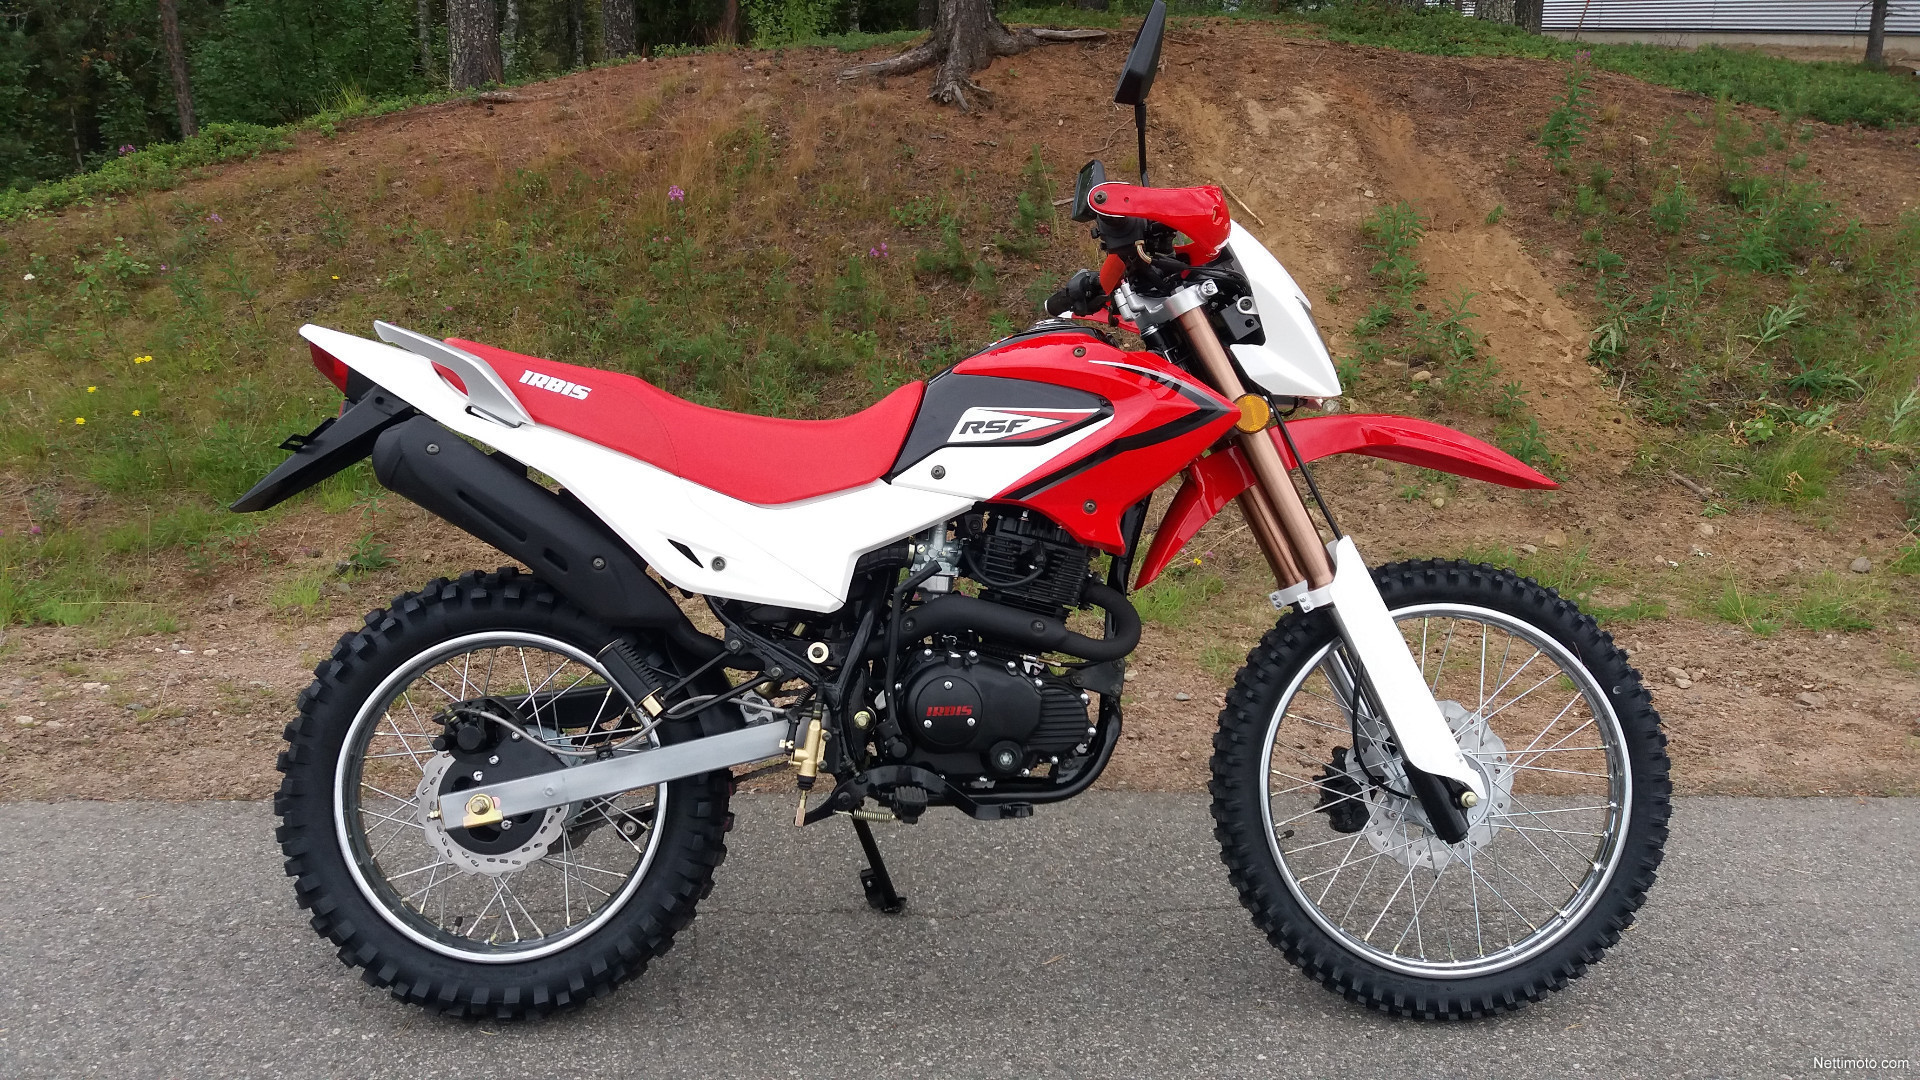 Motorcycle Irbis GR 250: photo, specifications, pros and cons, reviews 87